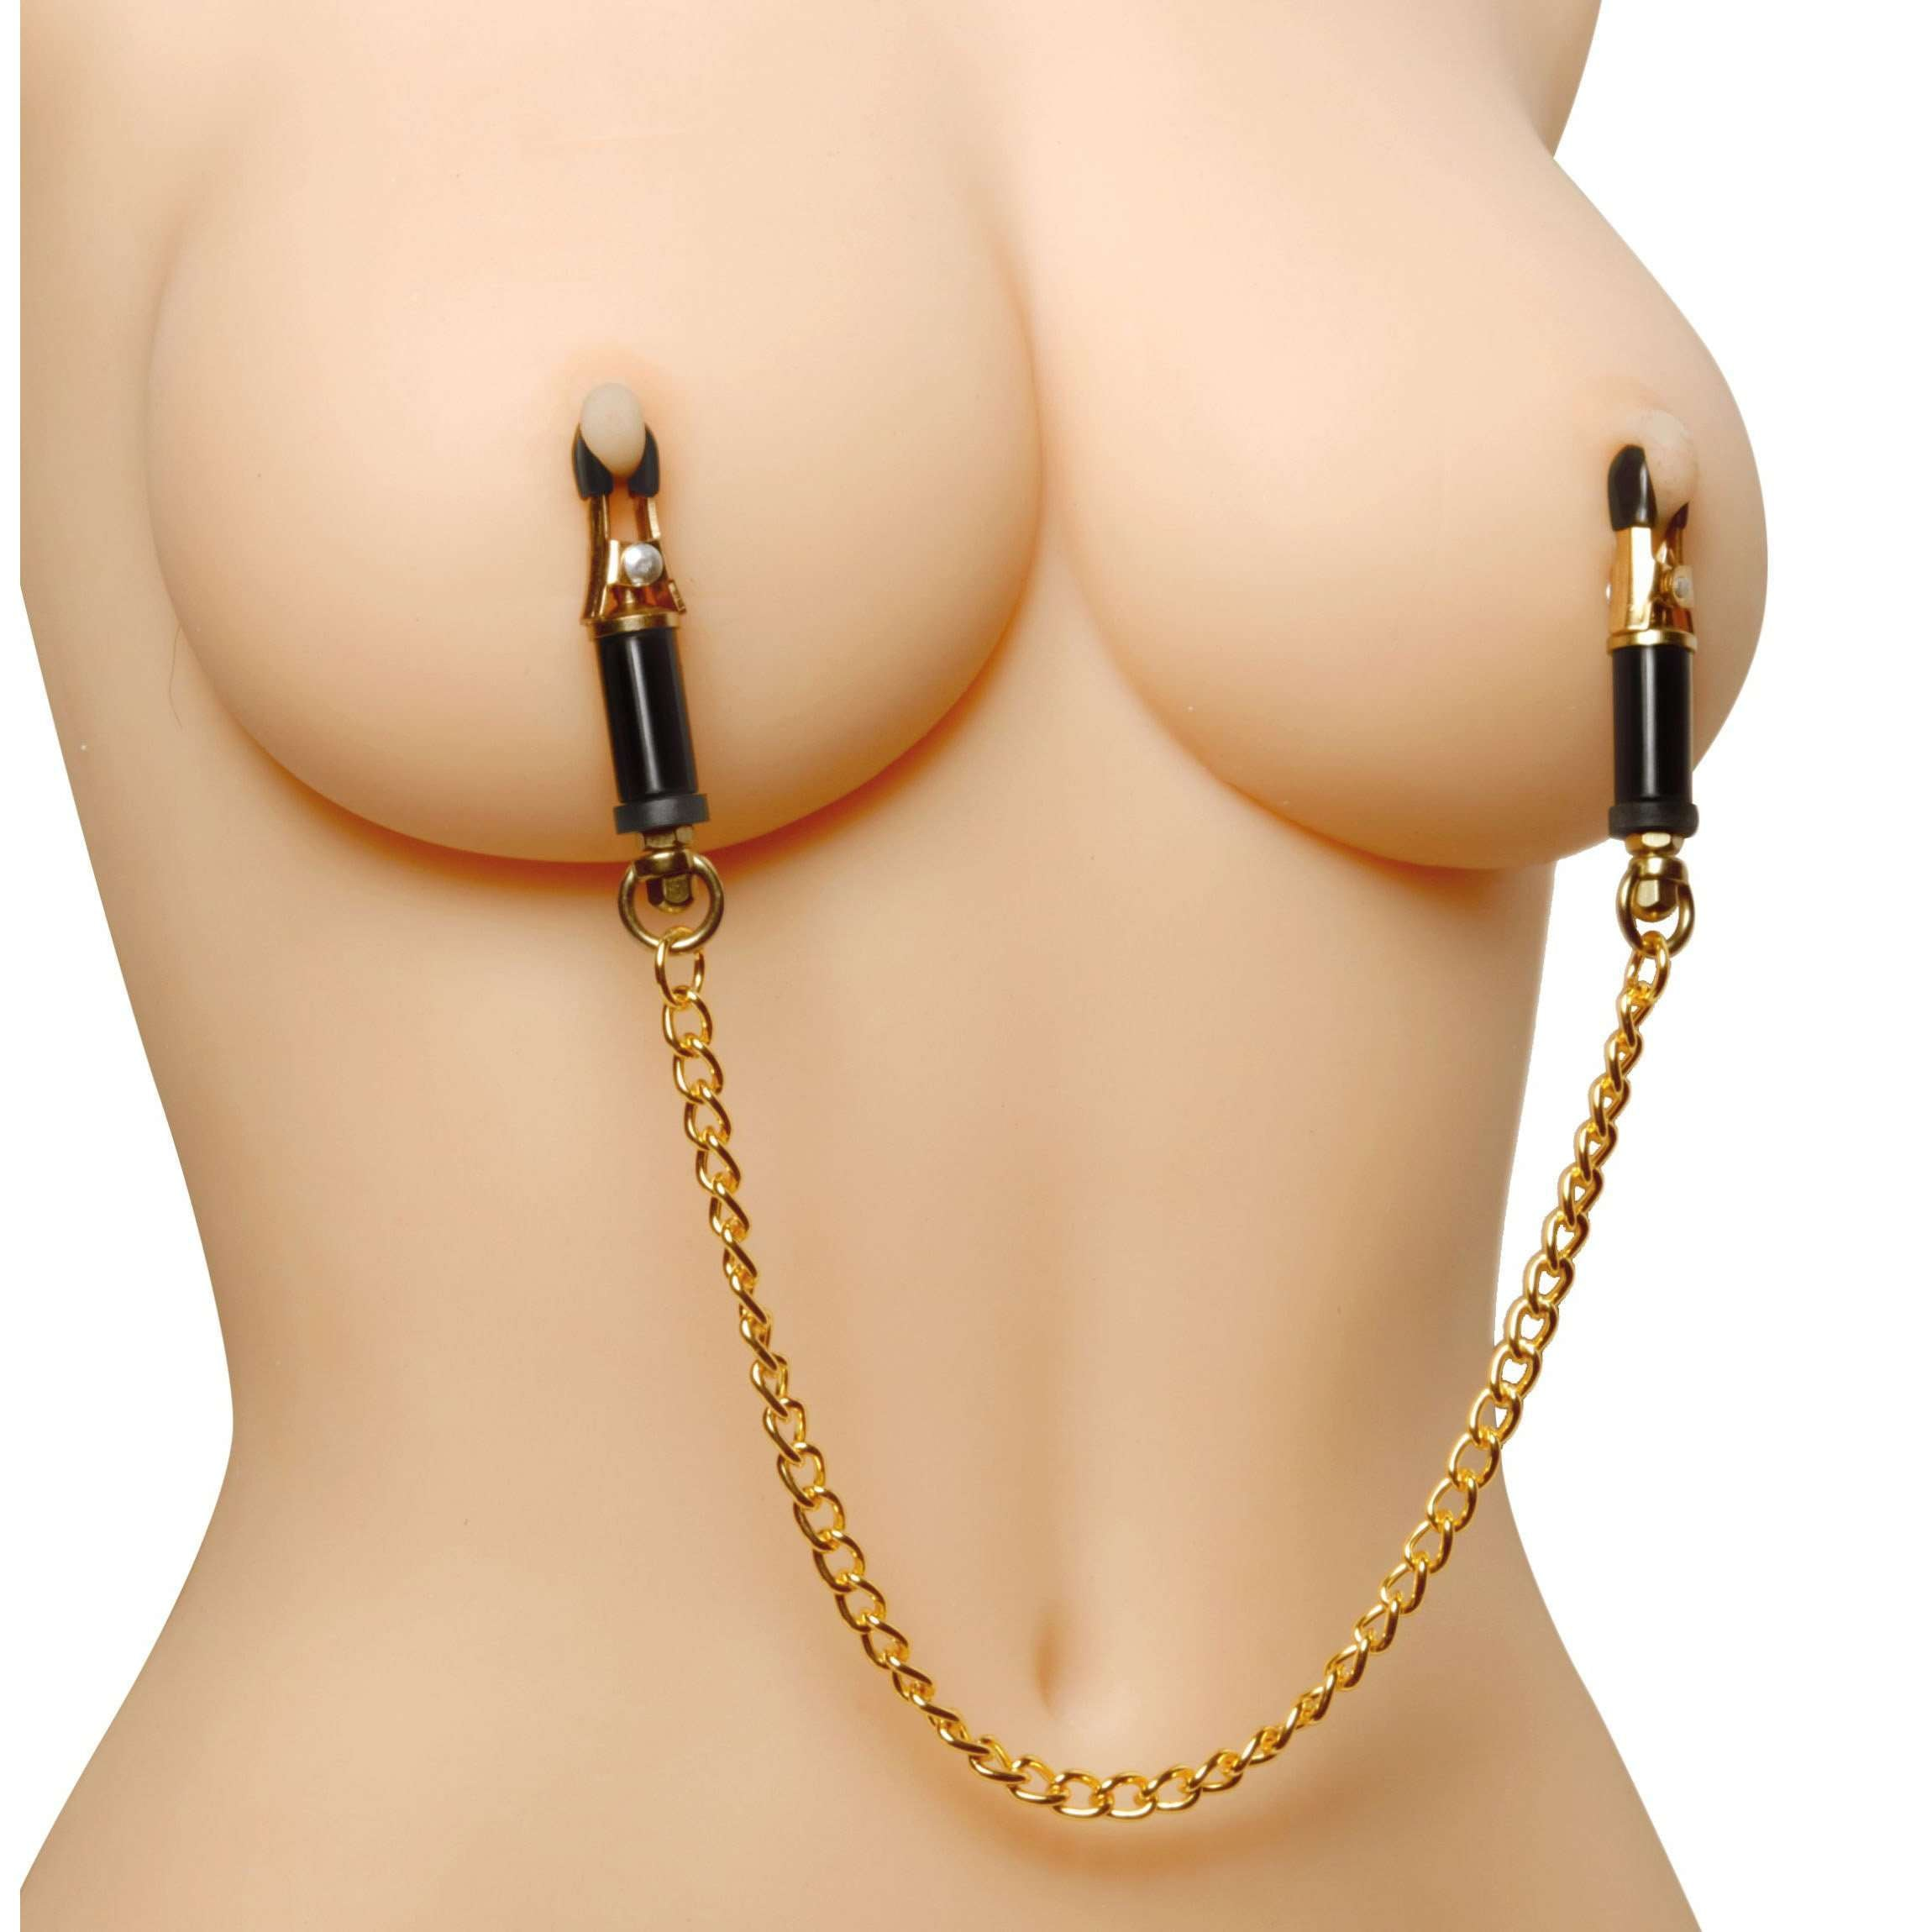 Deluxe Adjustable Nipple Clamps